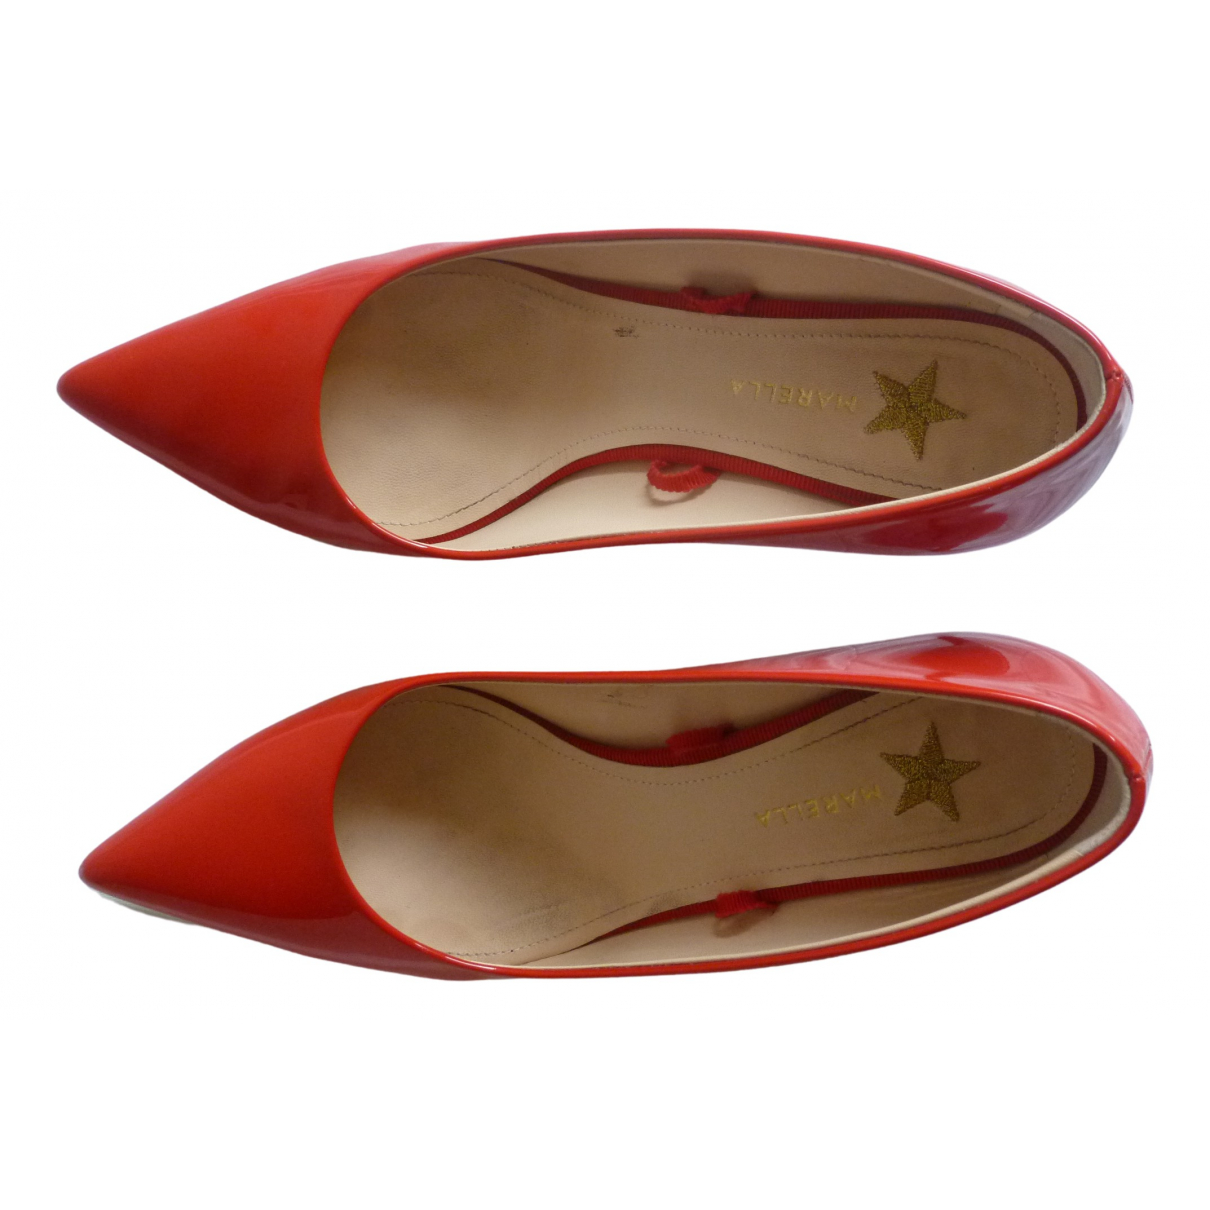 Marella \N Red Patent leather Heels for Women 37 EU